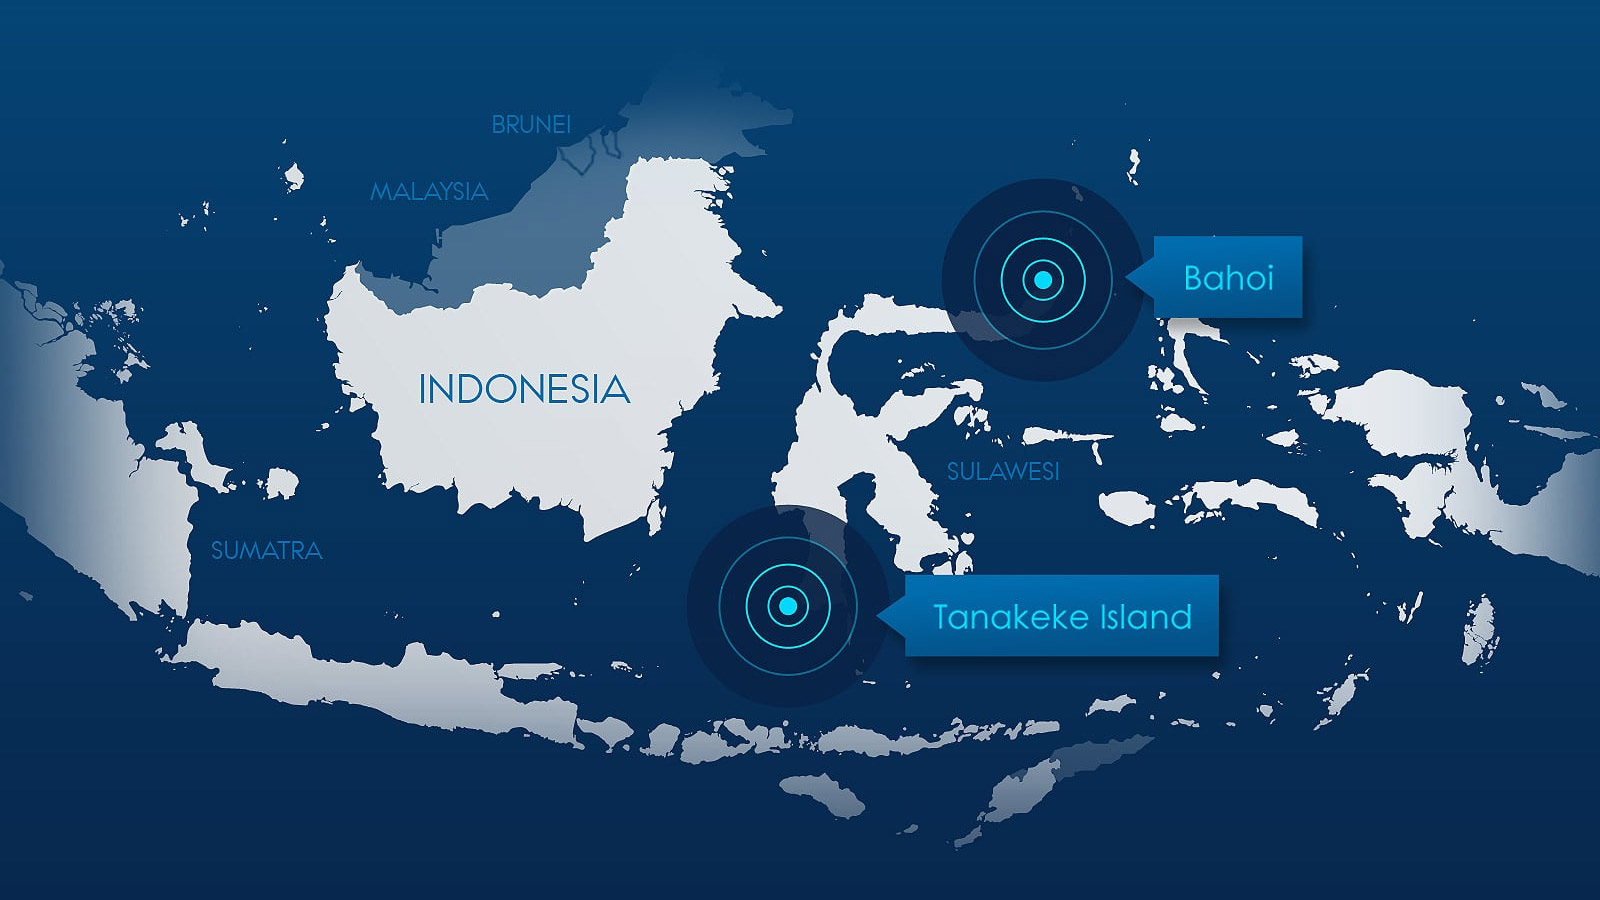 Map representing Indonesia and near islands